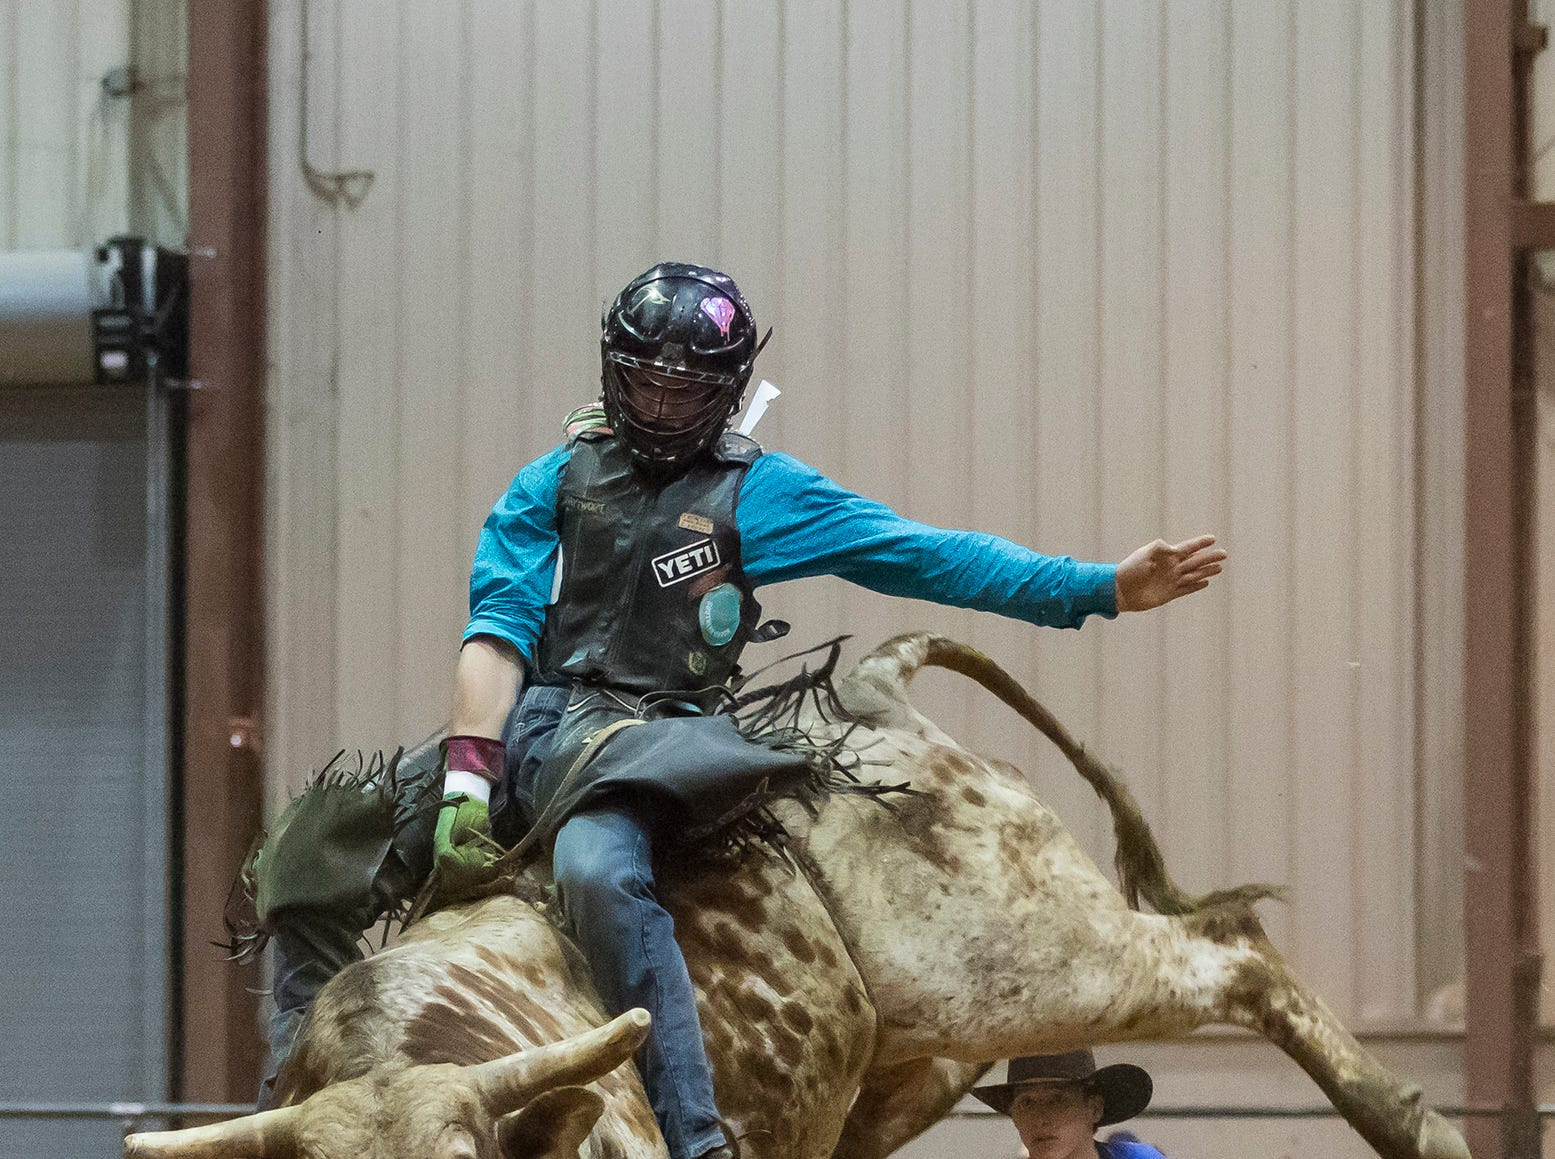 Bulls, Bands and Barrels visited the Ike Hamilton Convention Center in West Monroe on March 30. The event featured bull riding, barrel racing and was capped off by a concert featuring Frank Foster.